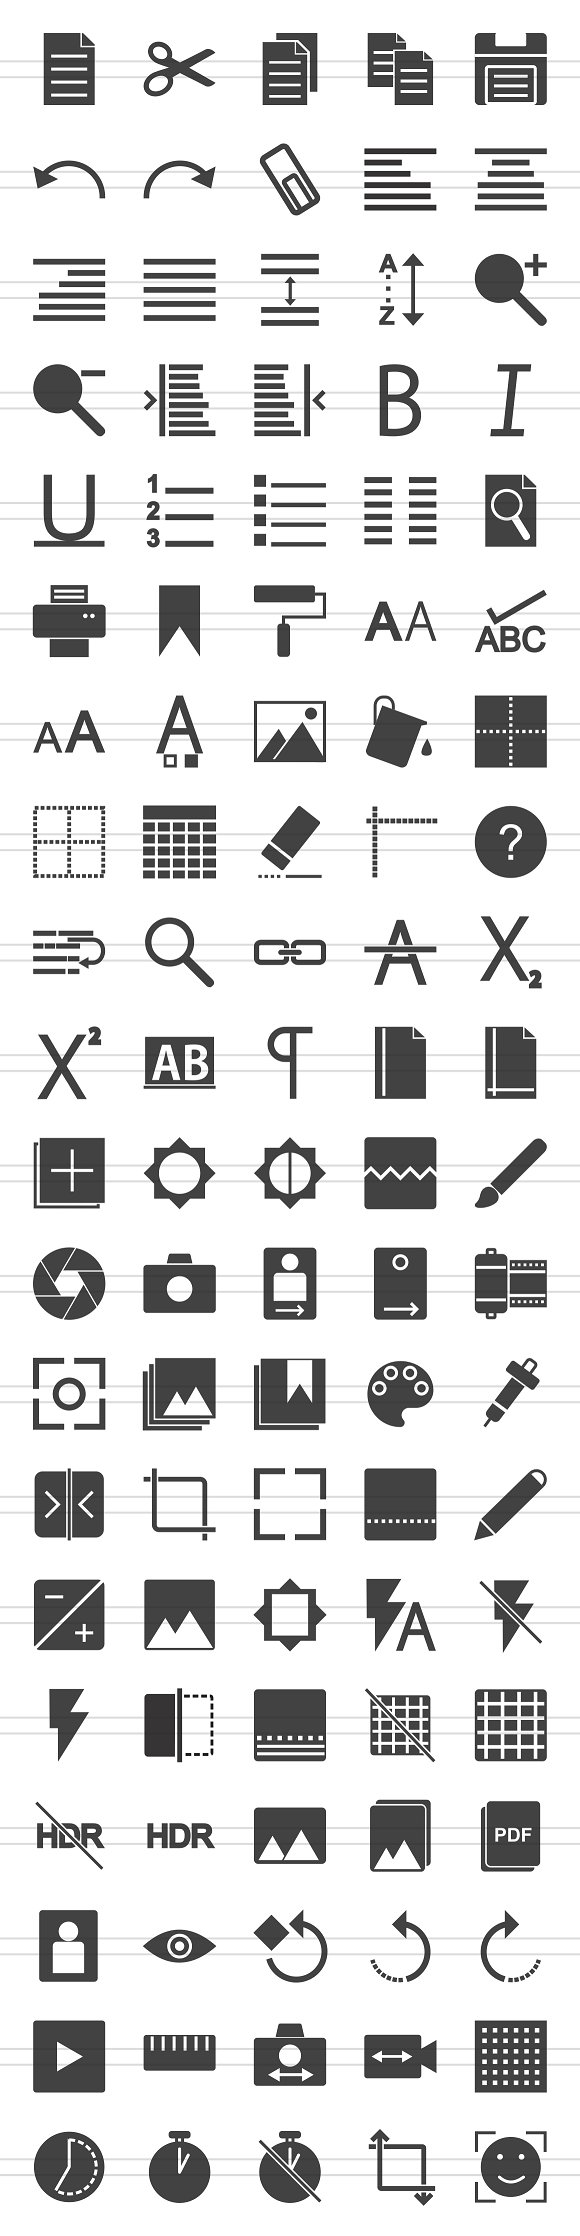 100 Photo & Text Editing Glyph Icons in Icons - product preview 1